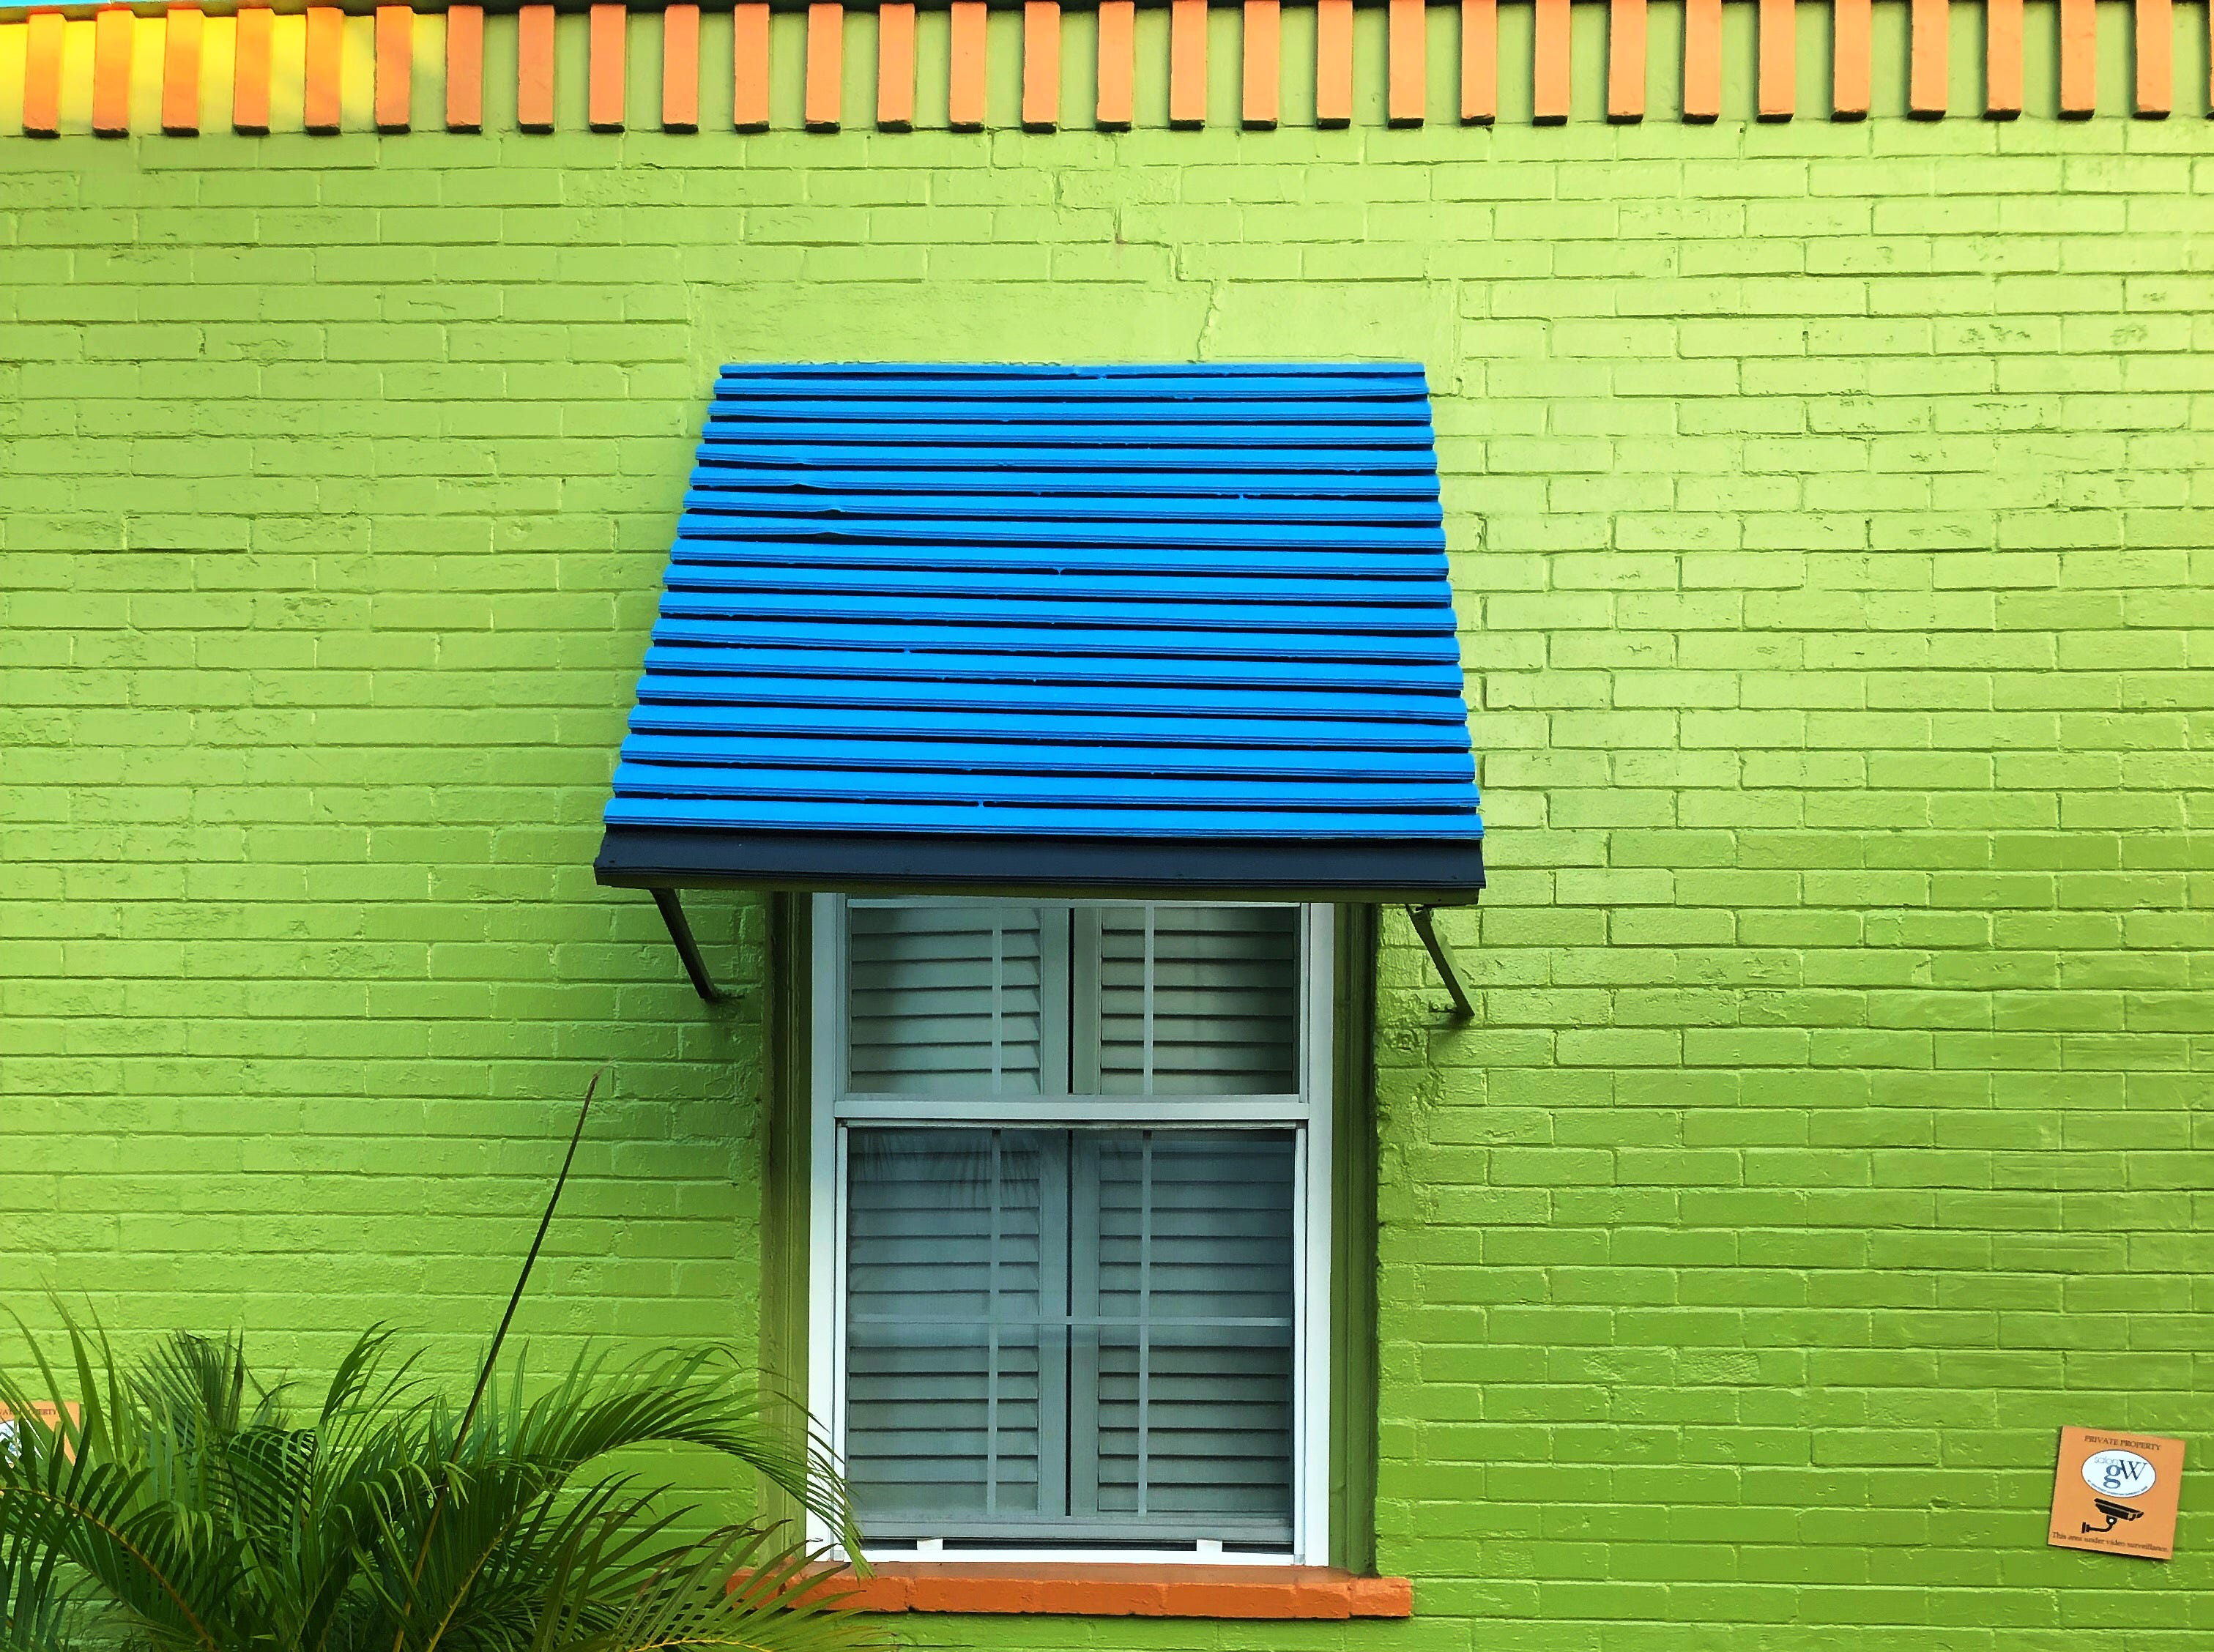 This bright colored building is a reflection of the warm, sunny weather in Dunedin, Fla., even on the last day of December.